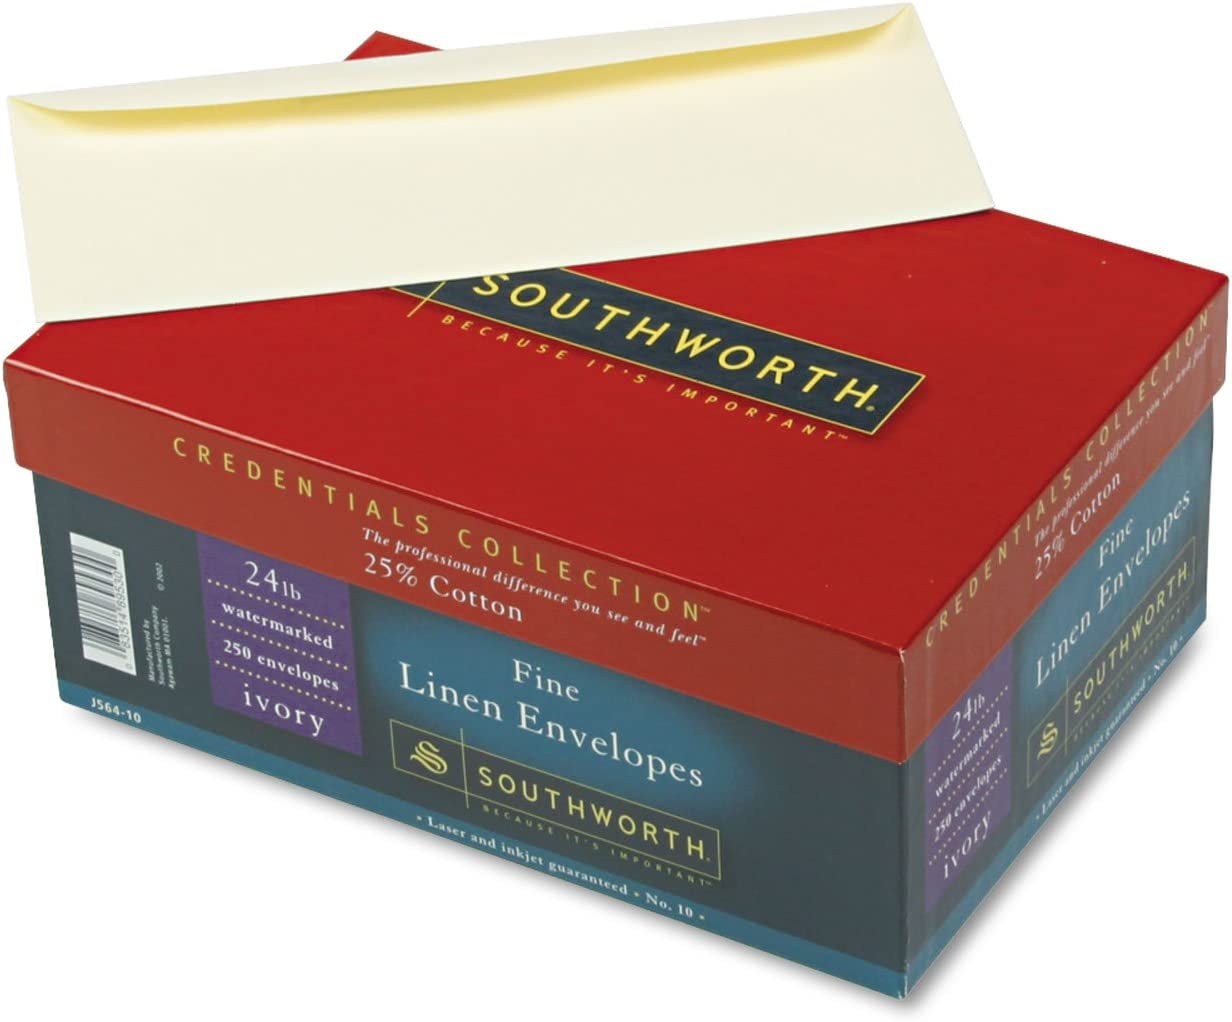 Southworth Super Special SALE held J56410 25% Cotton All stores are sold #10 Envelope lbs. Linen 25 Ivory 24